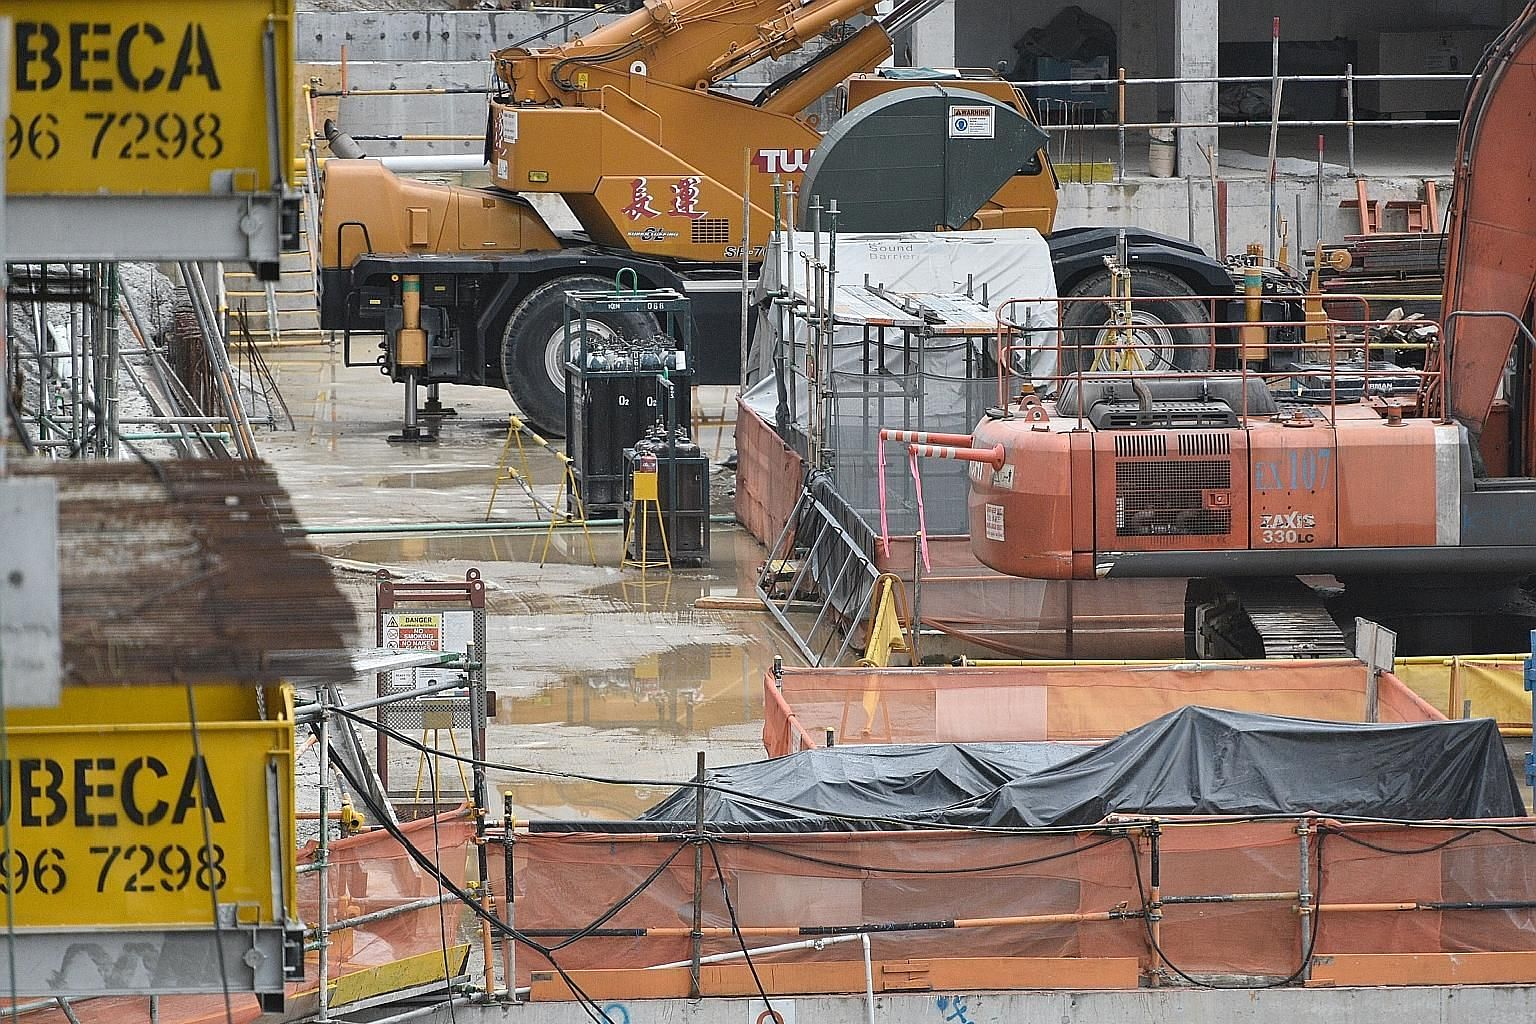 These photographs show construction sites where water can be seen pooling on the ground, in skip bins and on various surfaces.